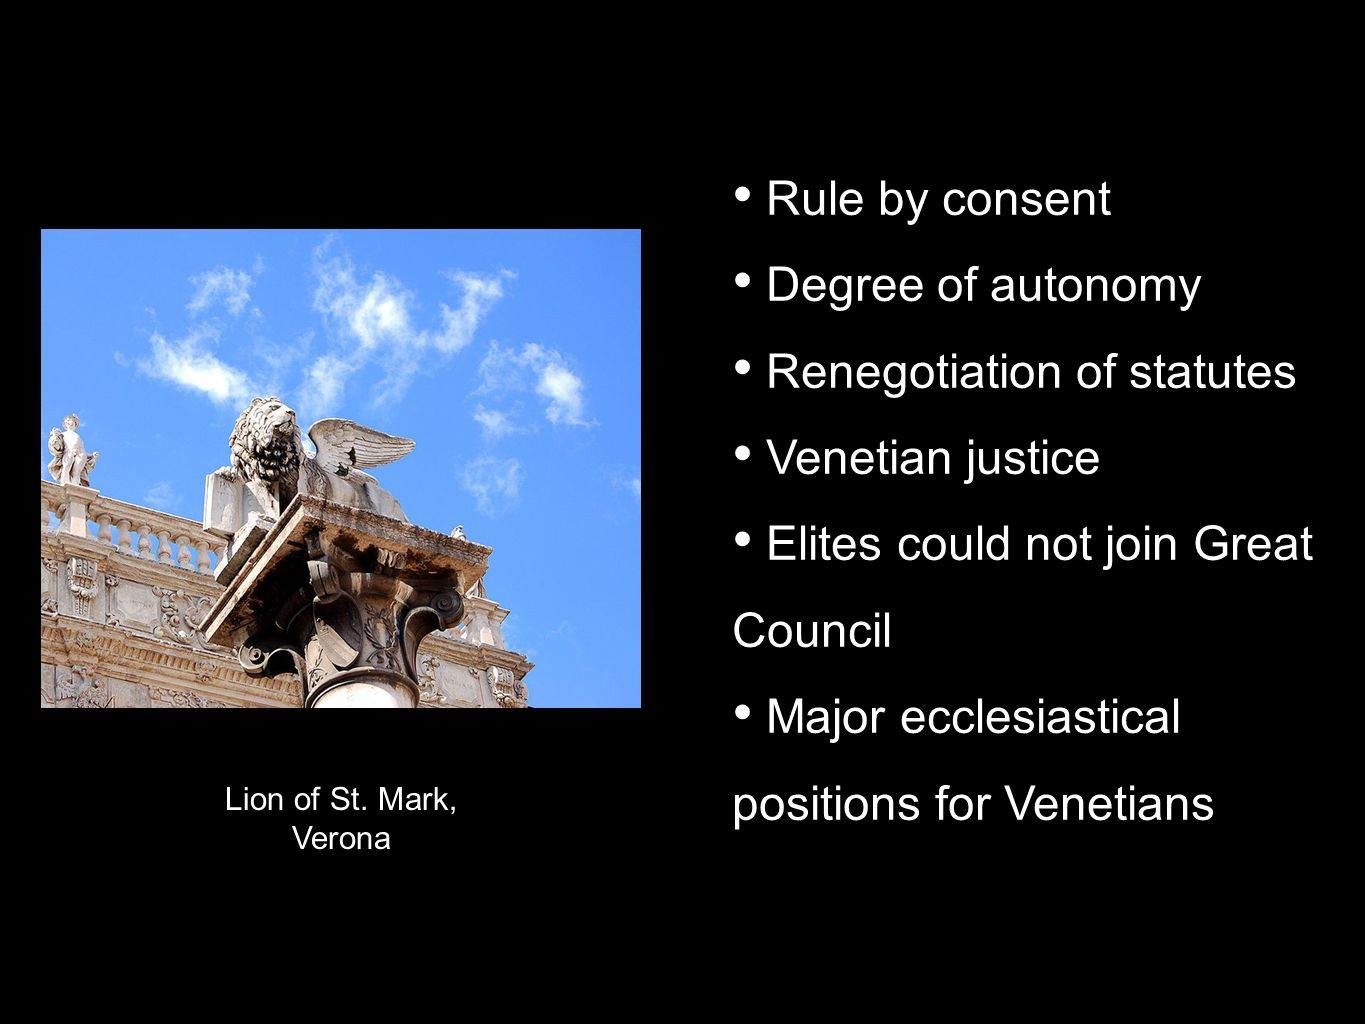 Lion of St. Mark, Verona Rule by consent Degree of autonomy Renegotiation of statutes Venetian justice Elites could not join Great Council Major eccle